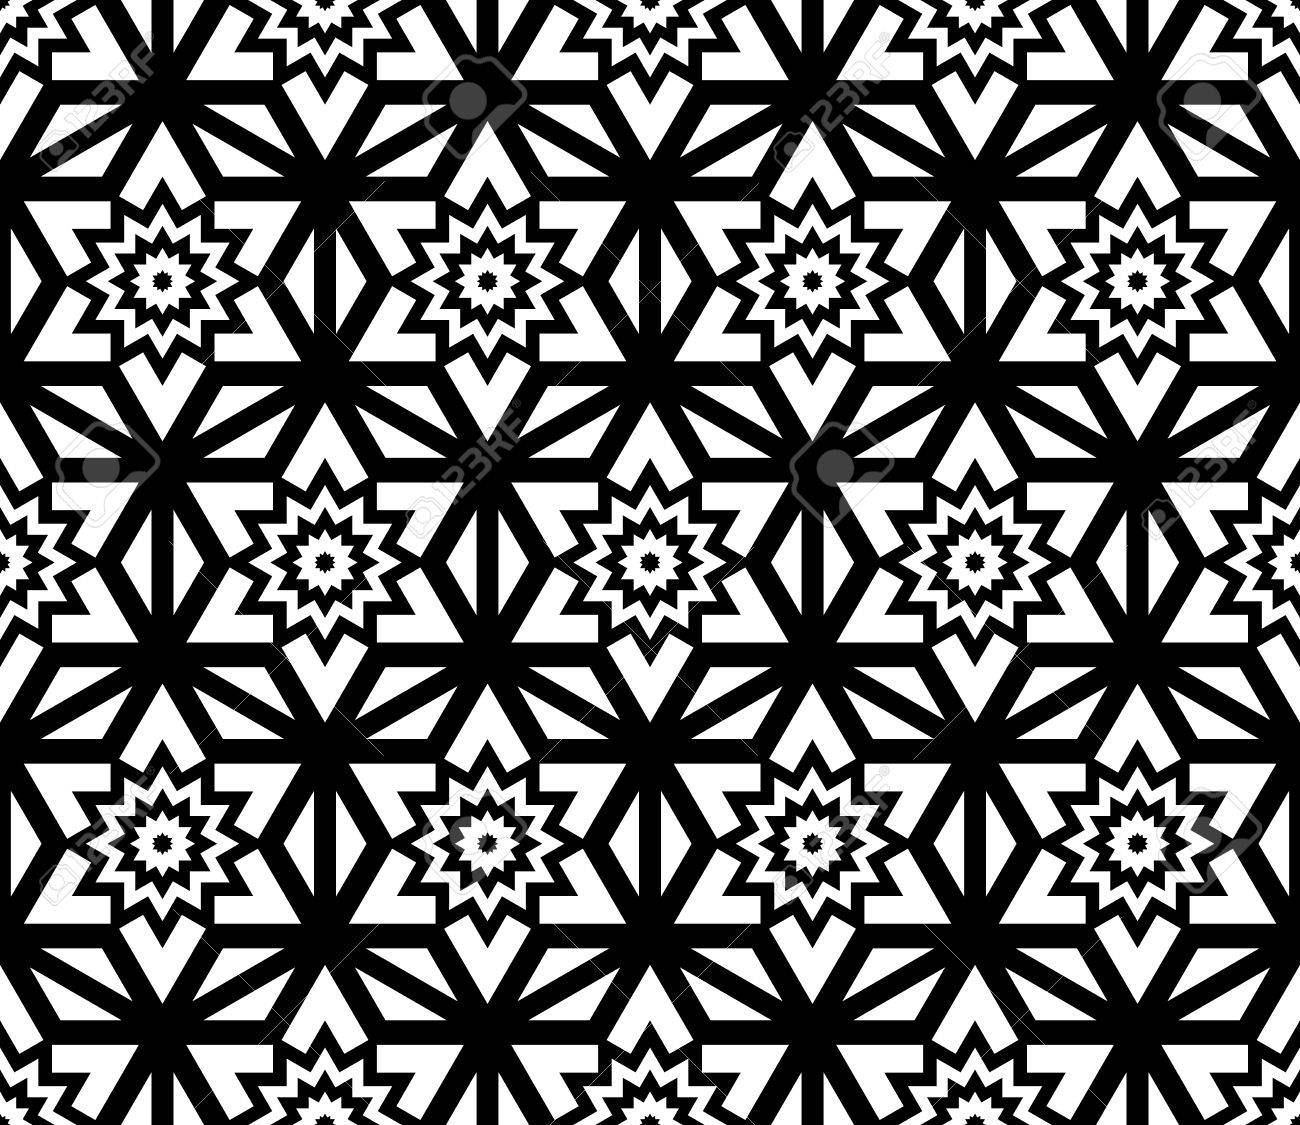 Bed sheet pattern texture - Vector Vector Modern Seamless Pattern Flower Black And White Textile Print Stylish Background Abstract Texture Monochrome Fashion Design Bed Sheets